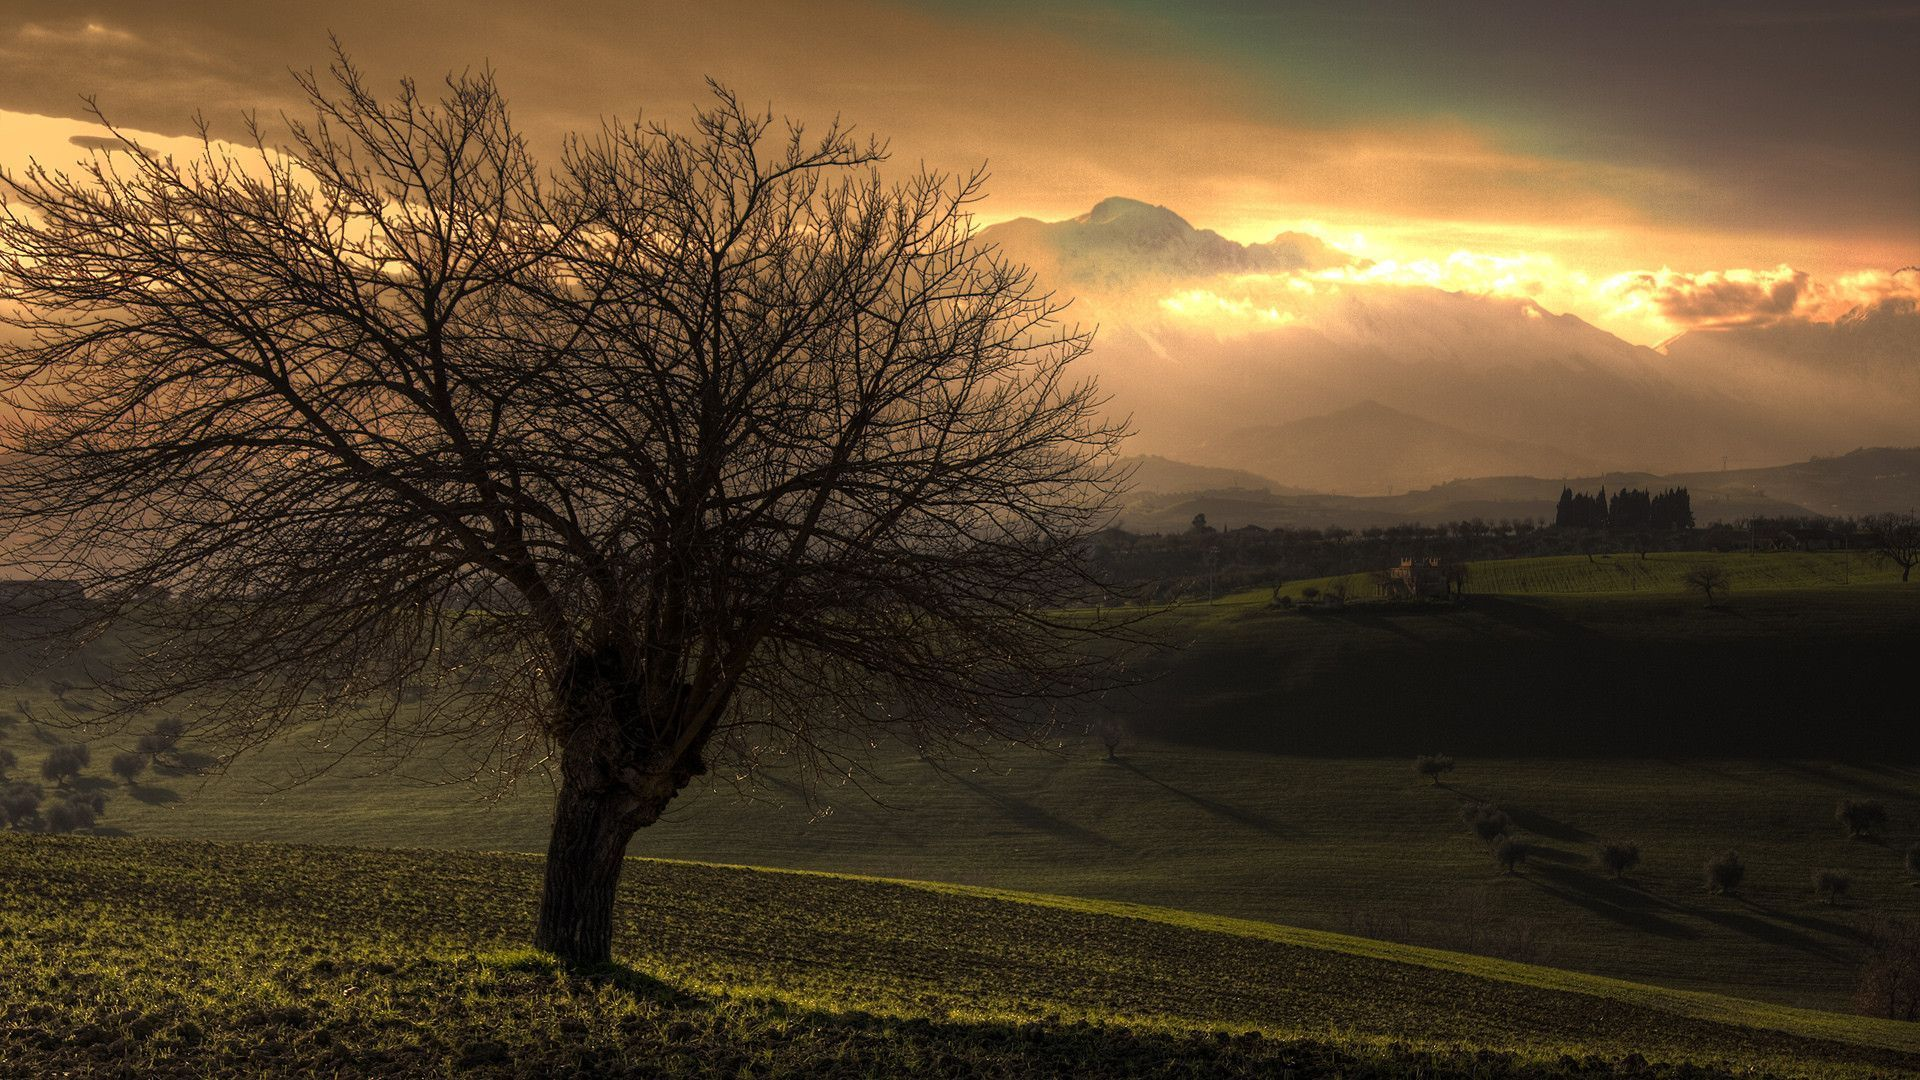 Nature Full Hd Wallpaper National Geographic Wallpaper 7822392 Sunset Wallpaper Nature Wallpaper Beautiful Nature